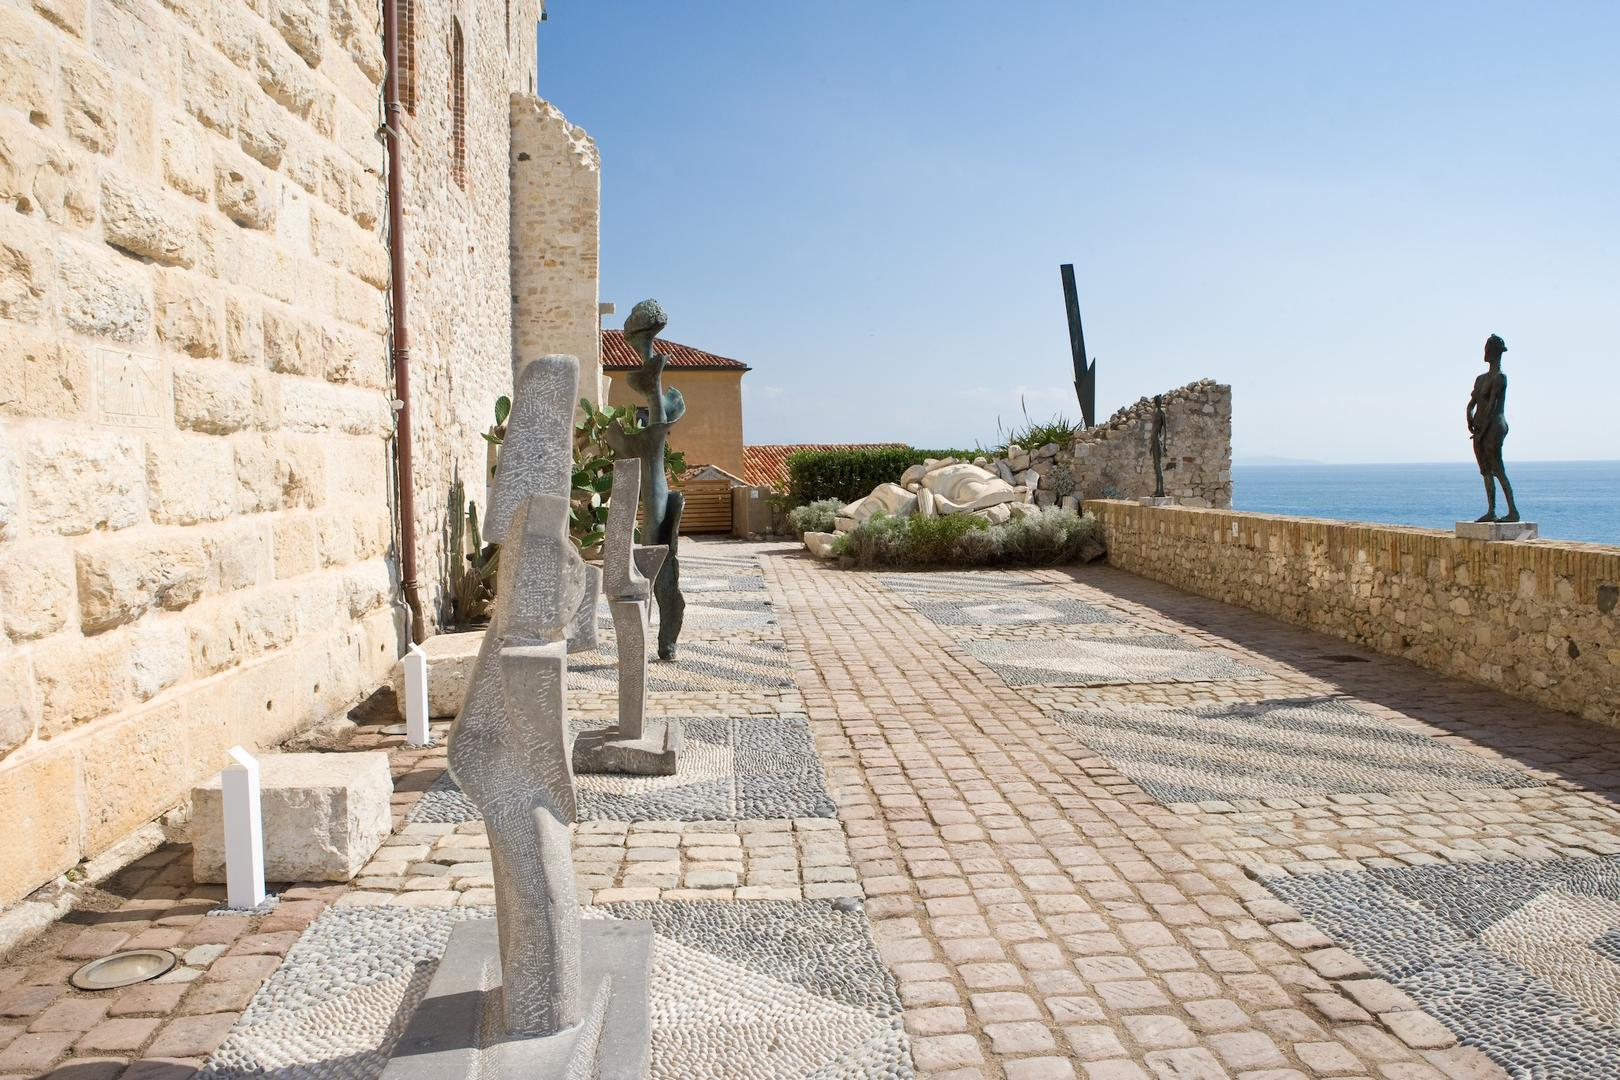 Piccaso Museum in Antibes, Cote d Azur